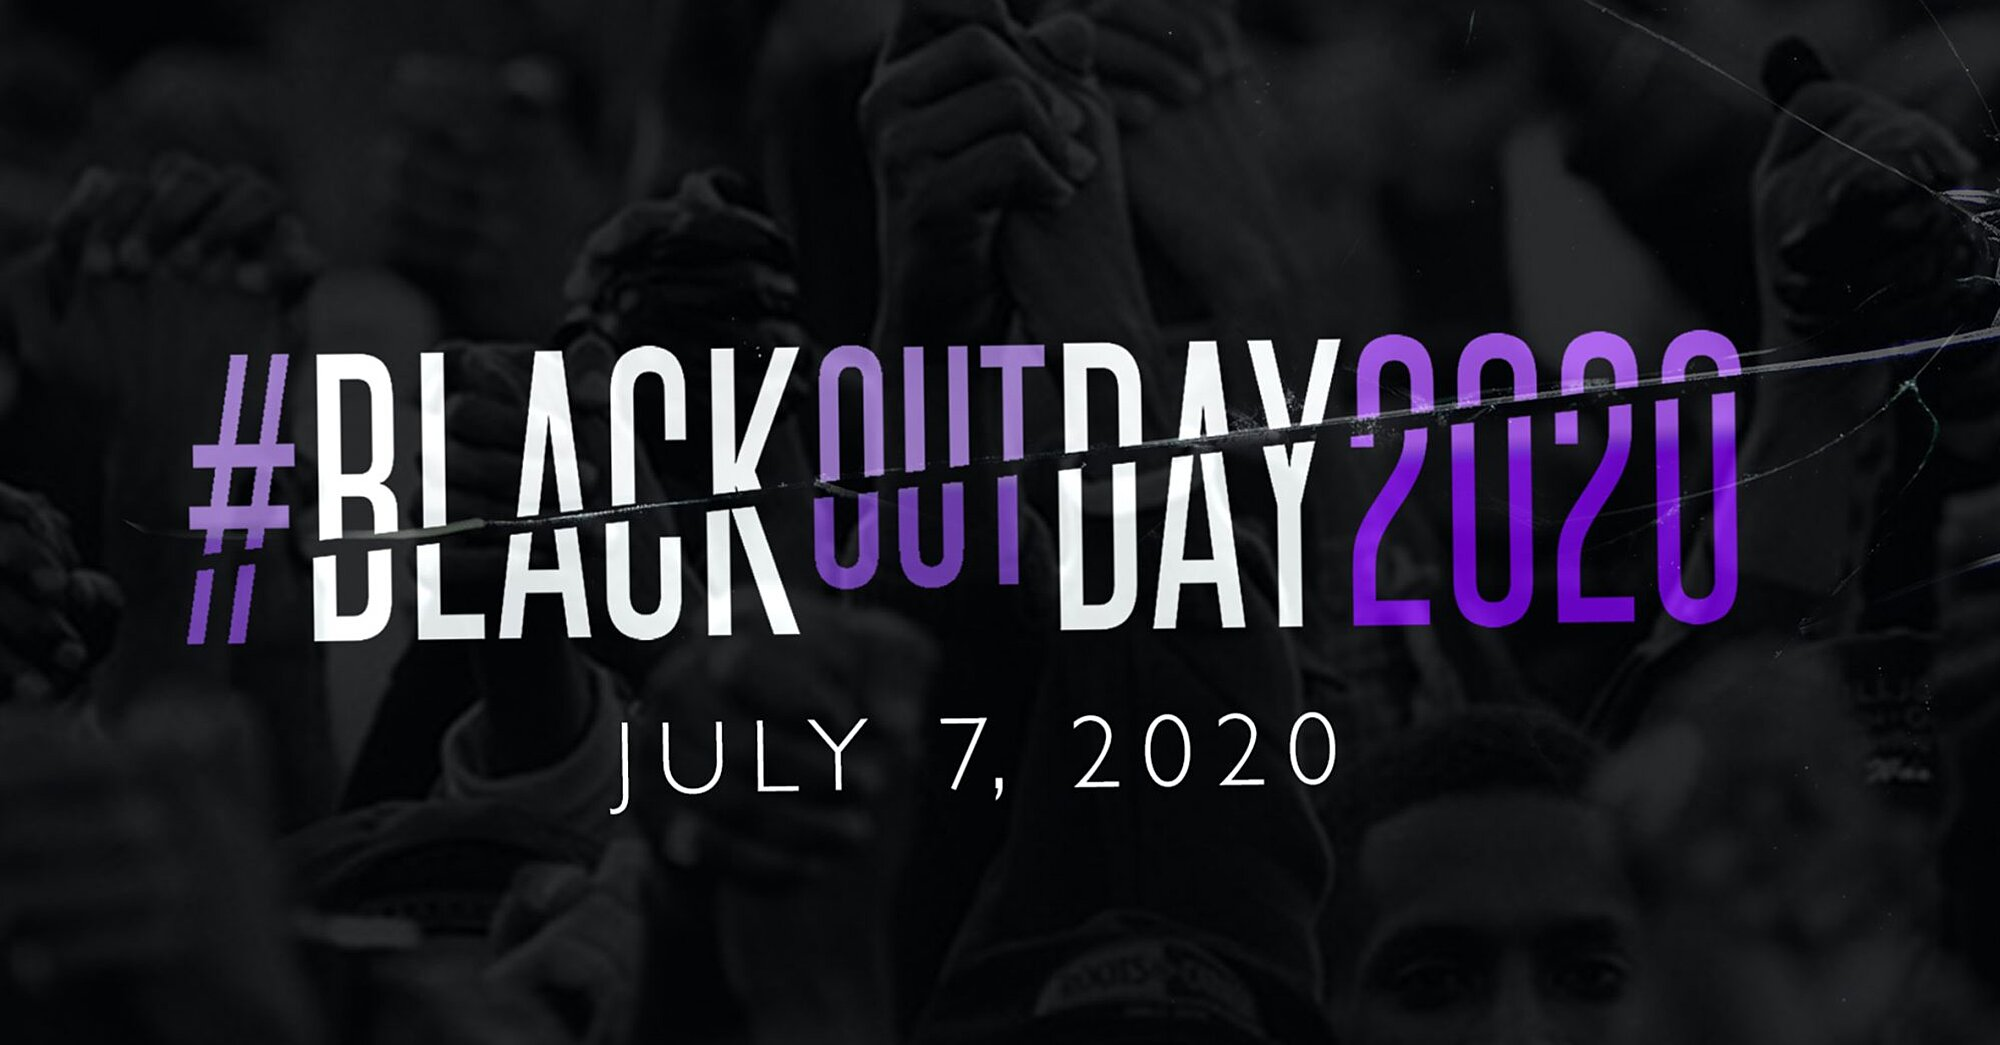 Everything You Need to Know About Blackout Day 2020